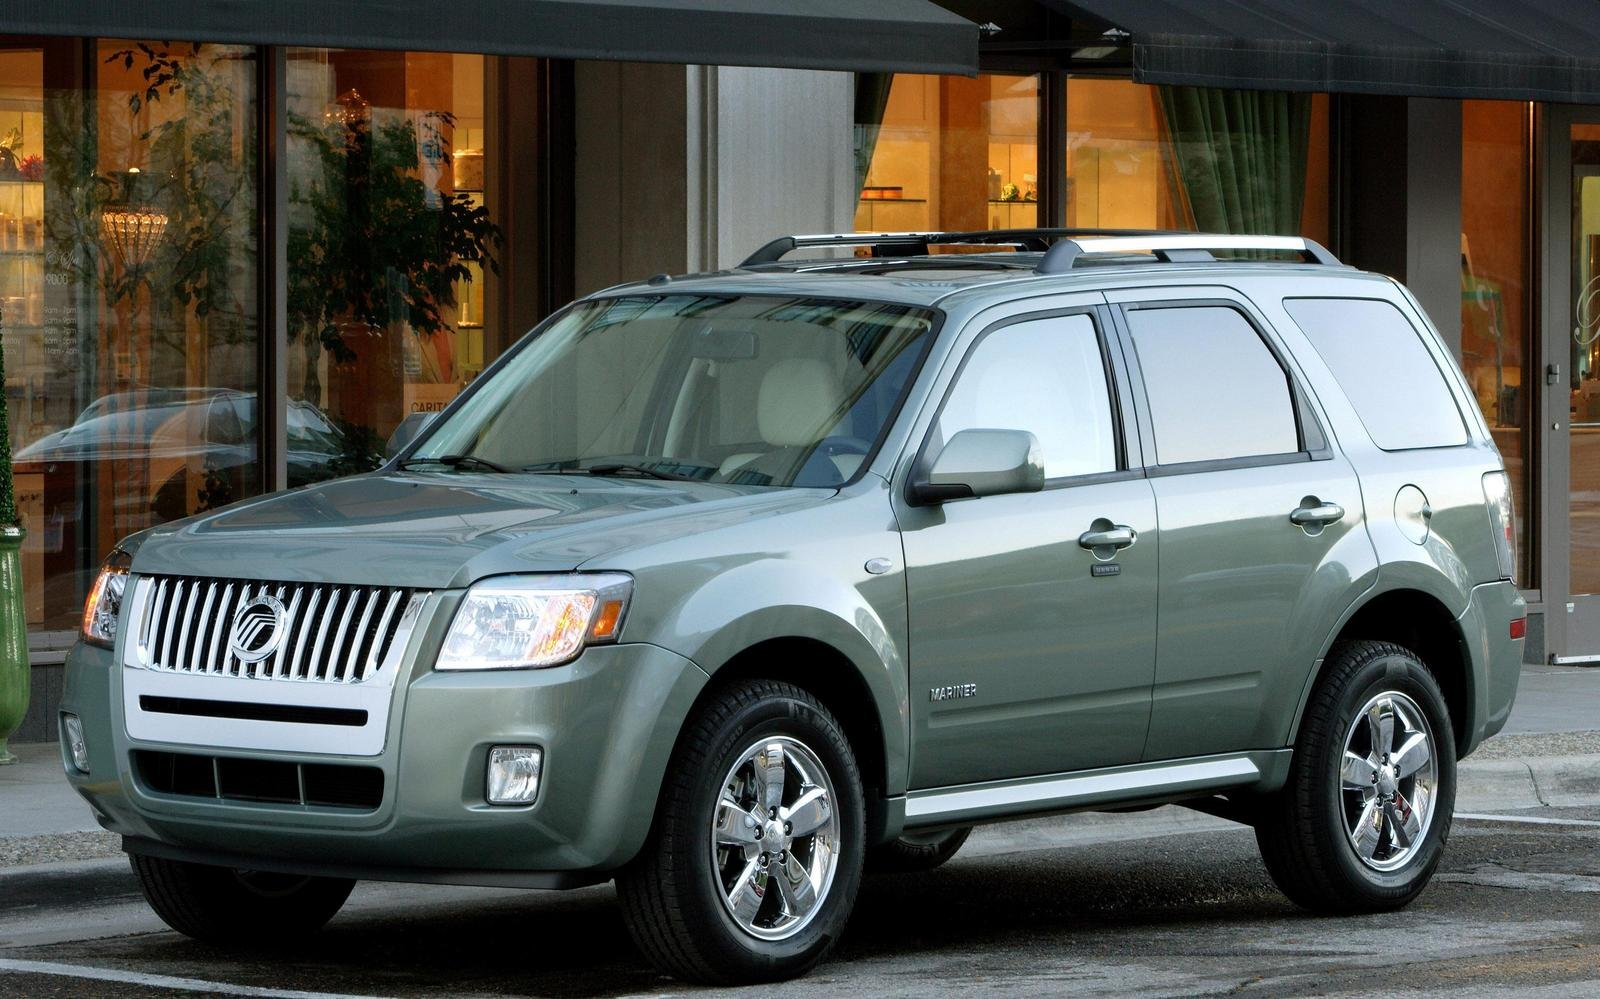 2008 Mercury Mariner VOGA Edition Review